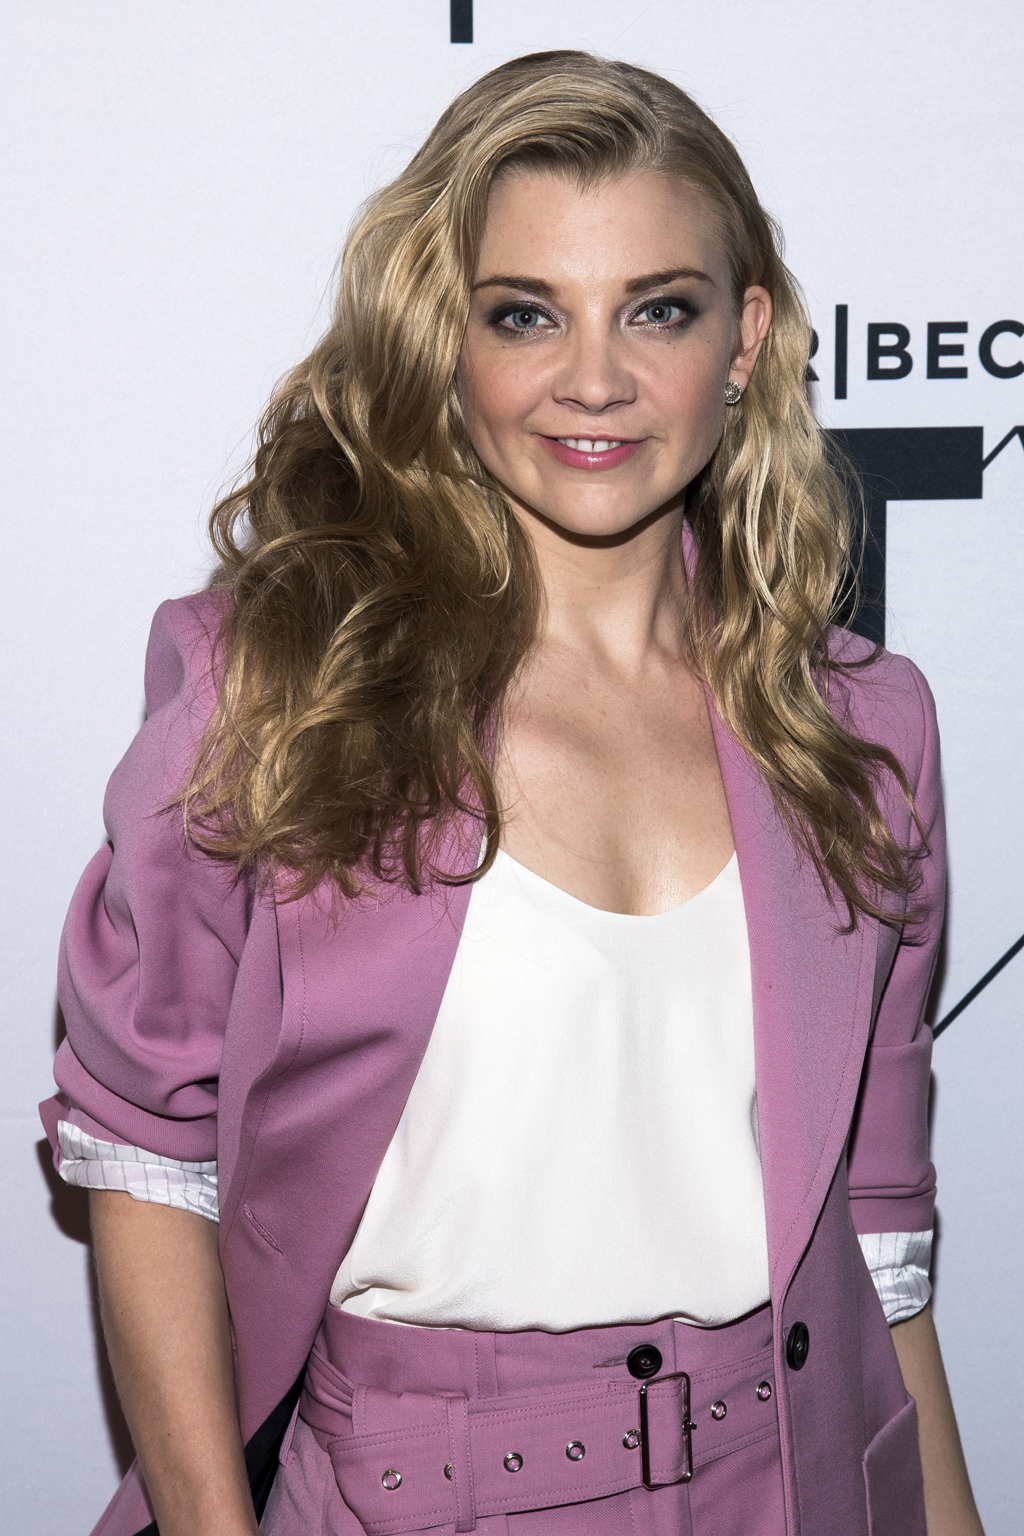 Natalie Dormer attends a screening of Picnic at Hanging Rock at the SVA Theater during the 2018 Tribeca Film Festival in New York.